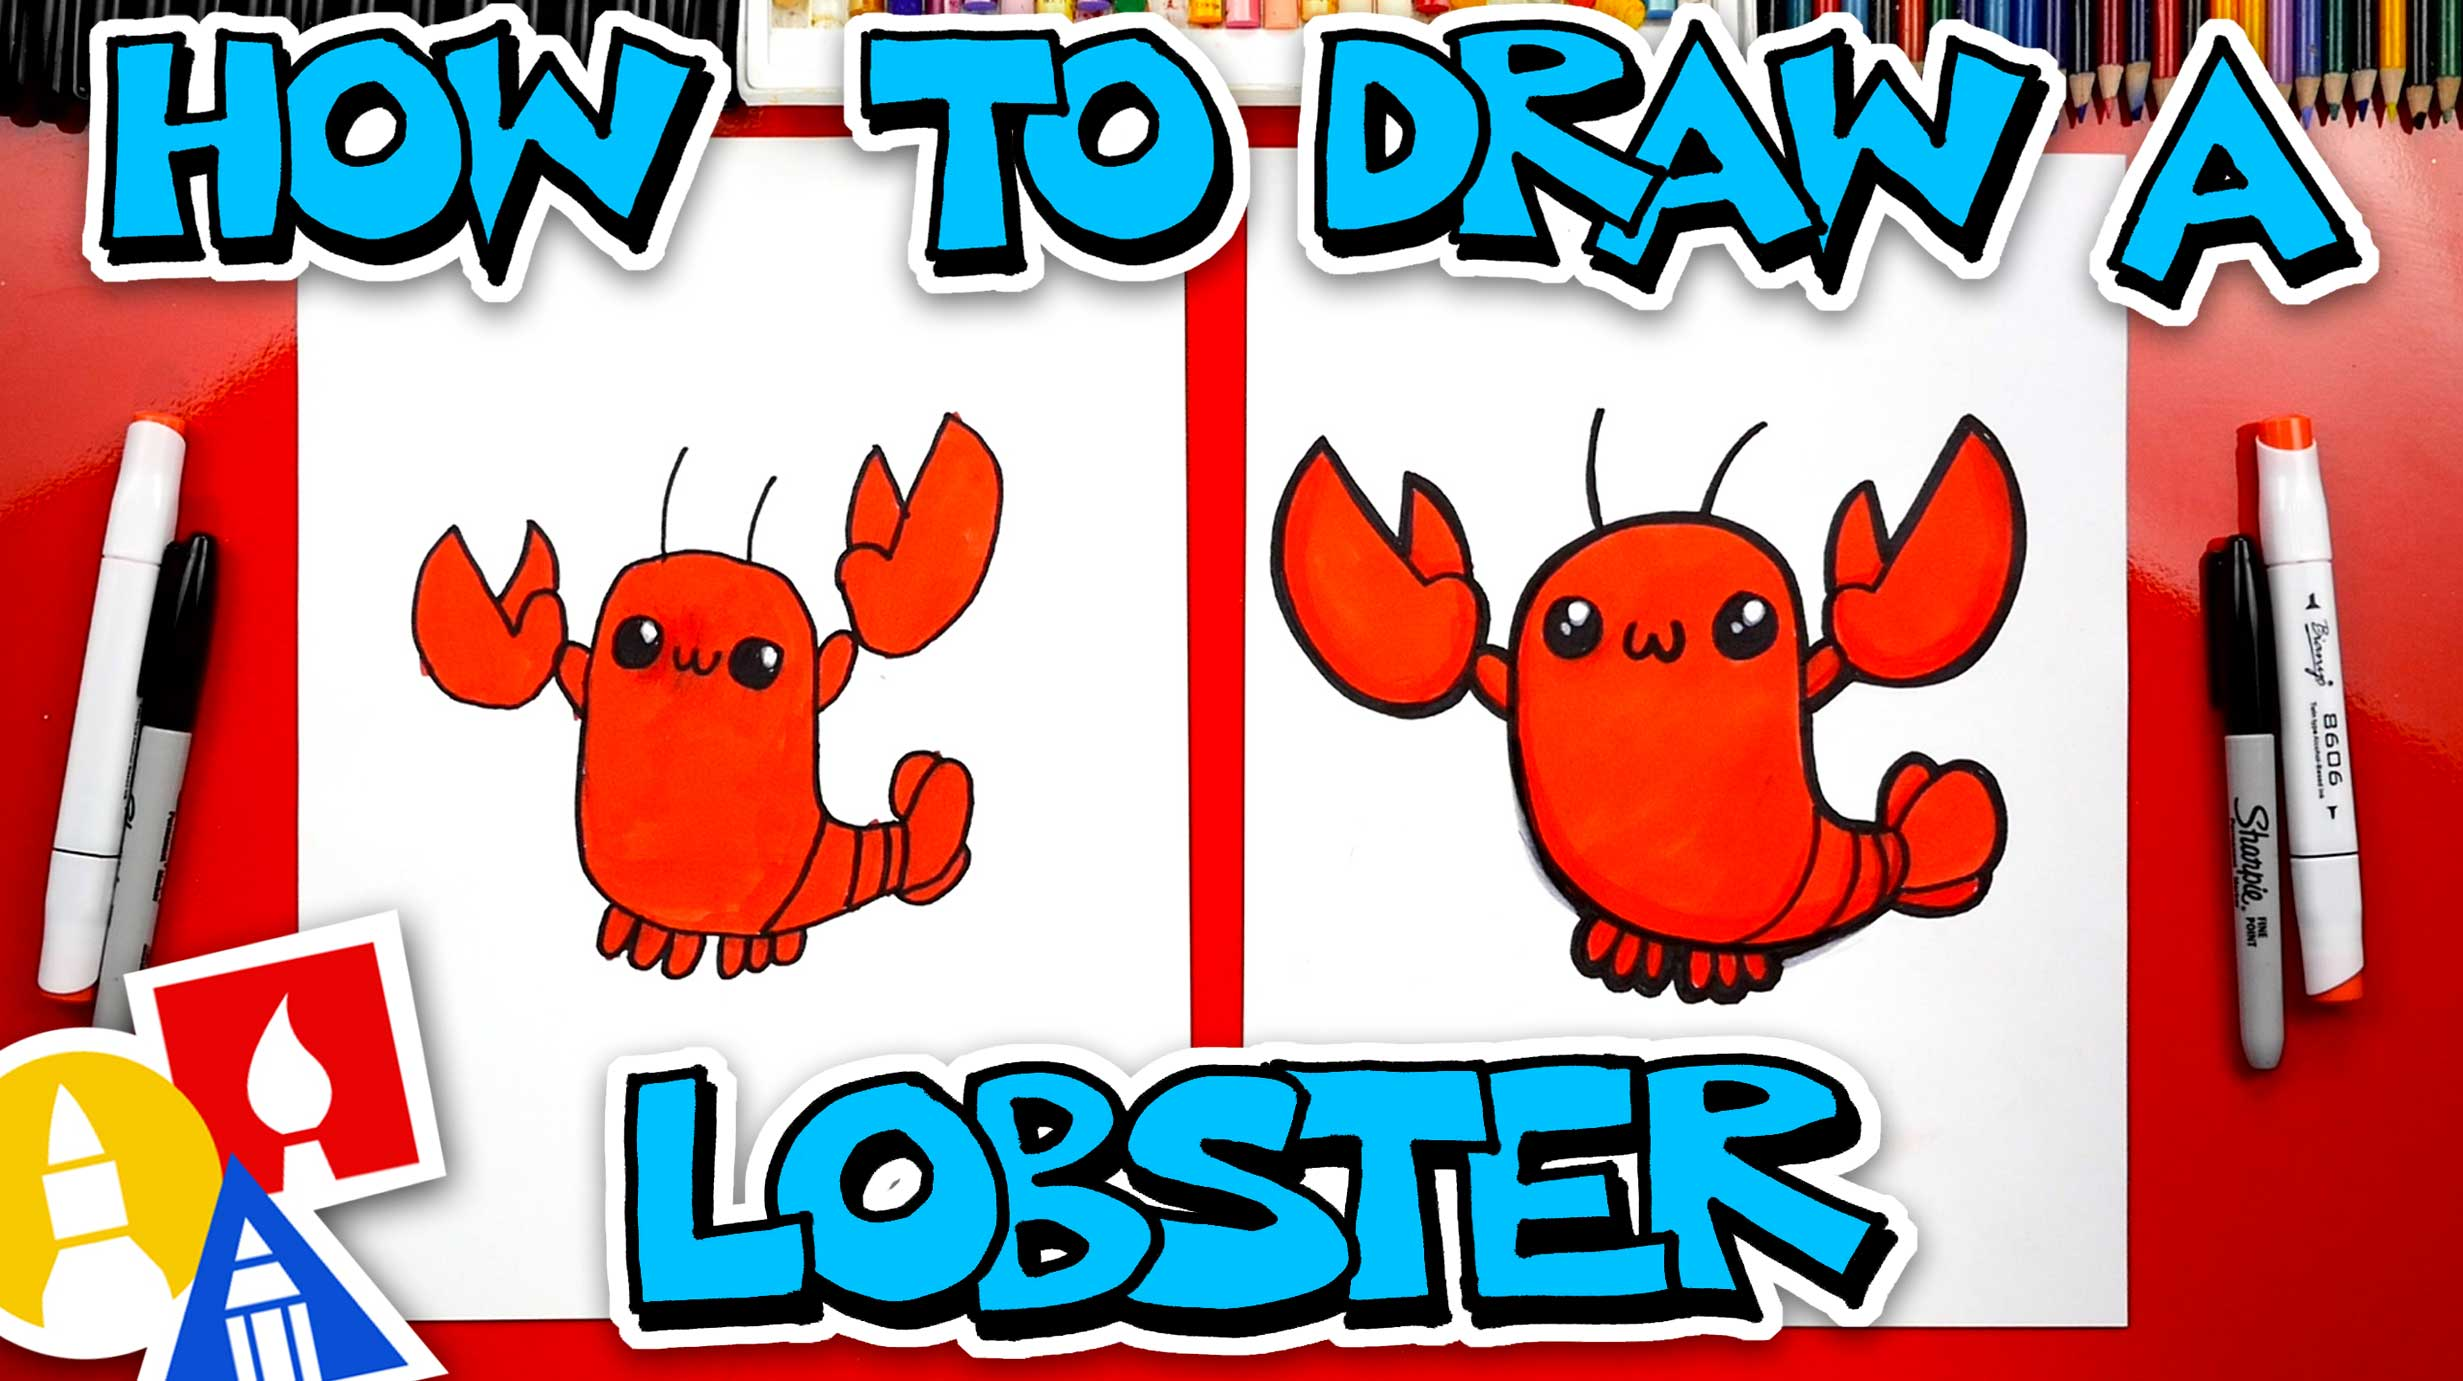 How To Draw A Lobster - Art For Kids Hub